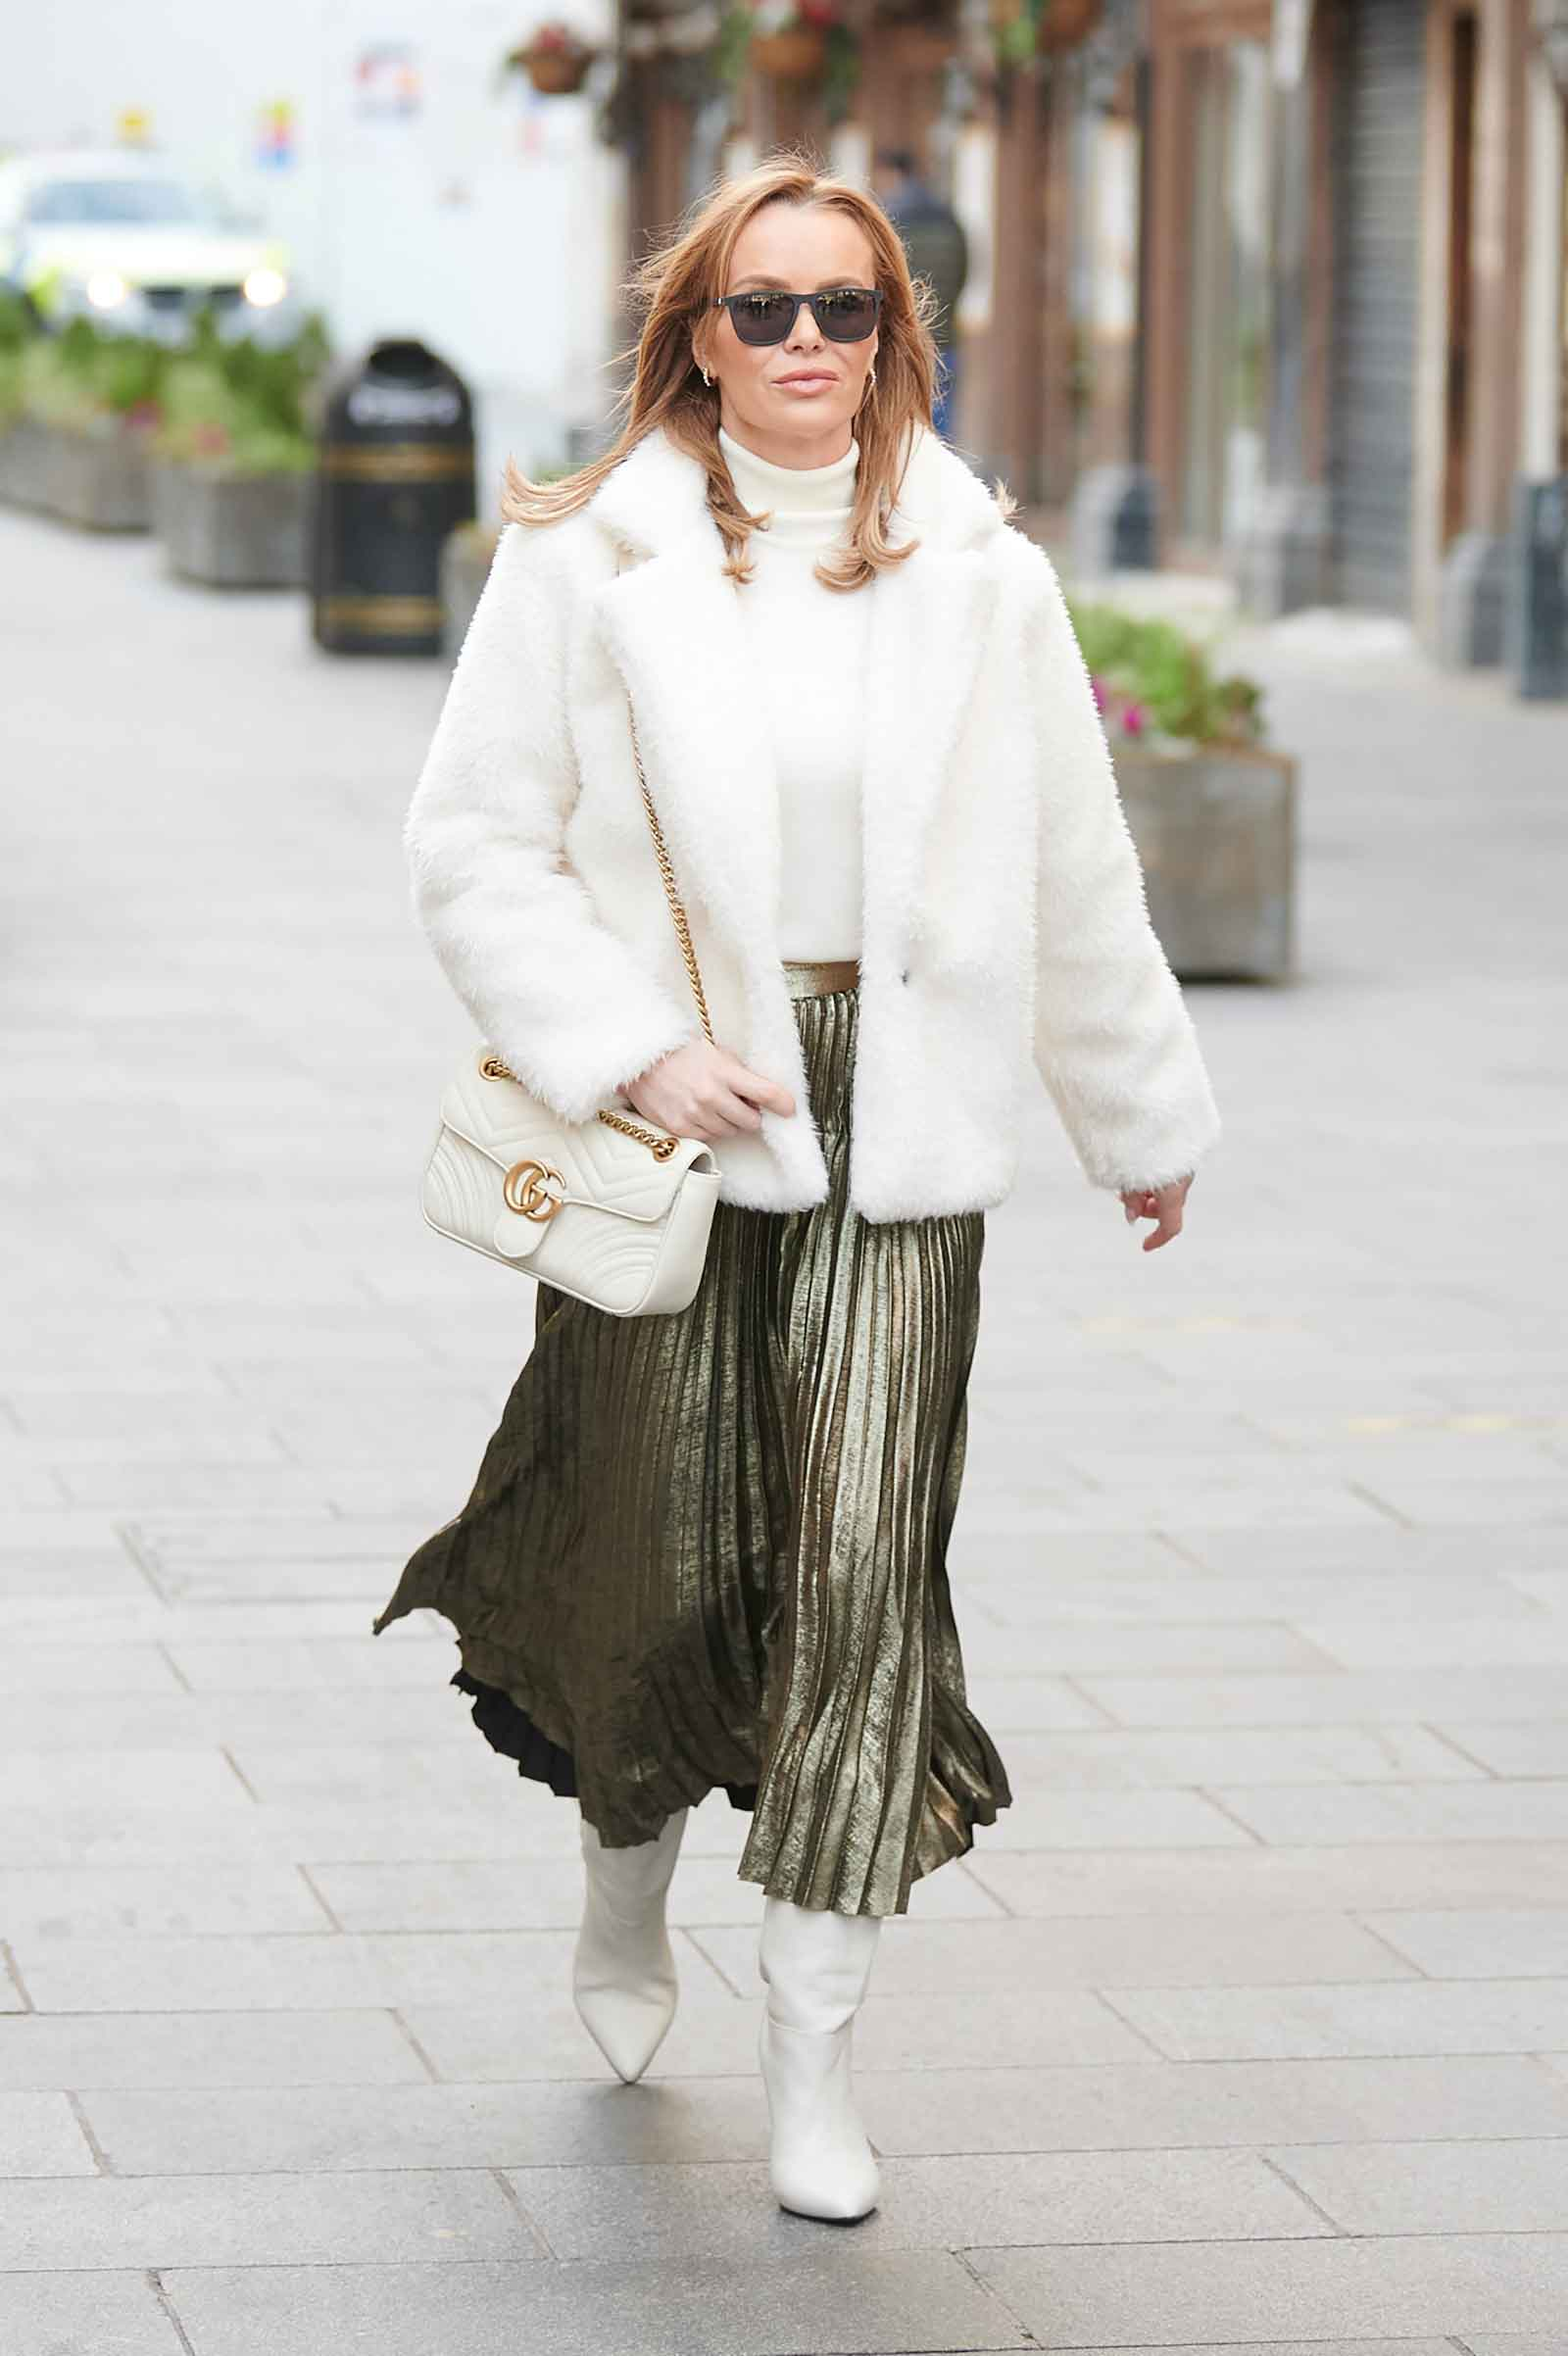 Amanda Holden's Gold Pleated Skirt and White Fur Jacket Look for Less | Holiday Outfit Idea